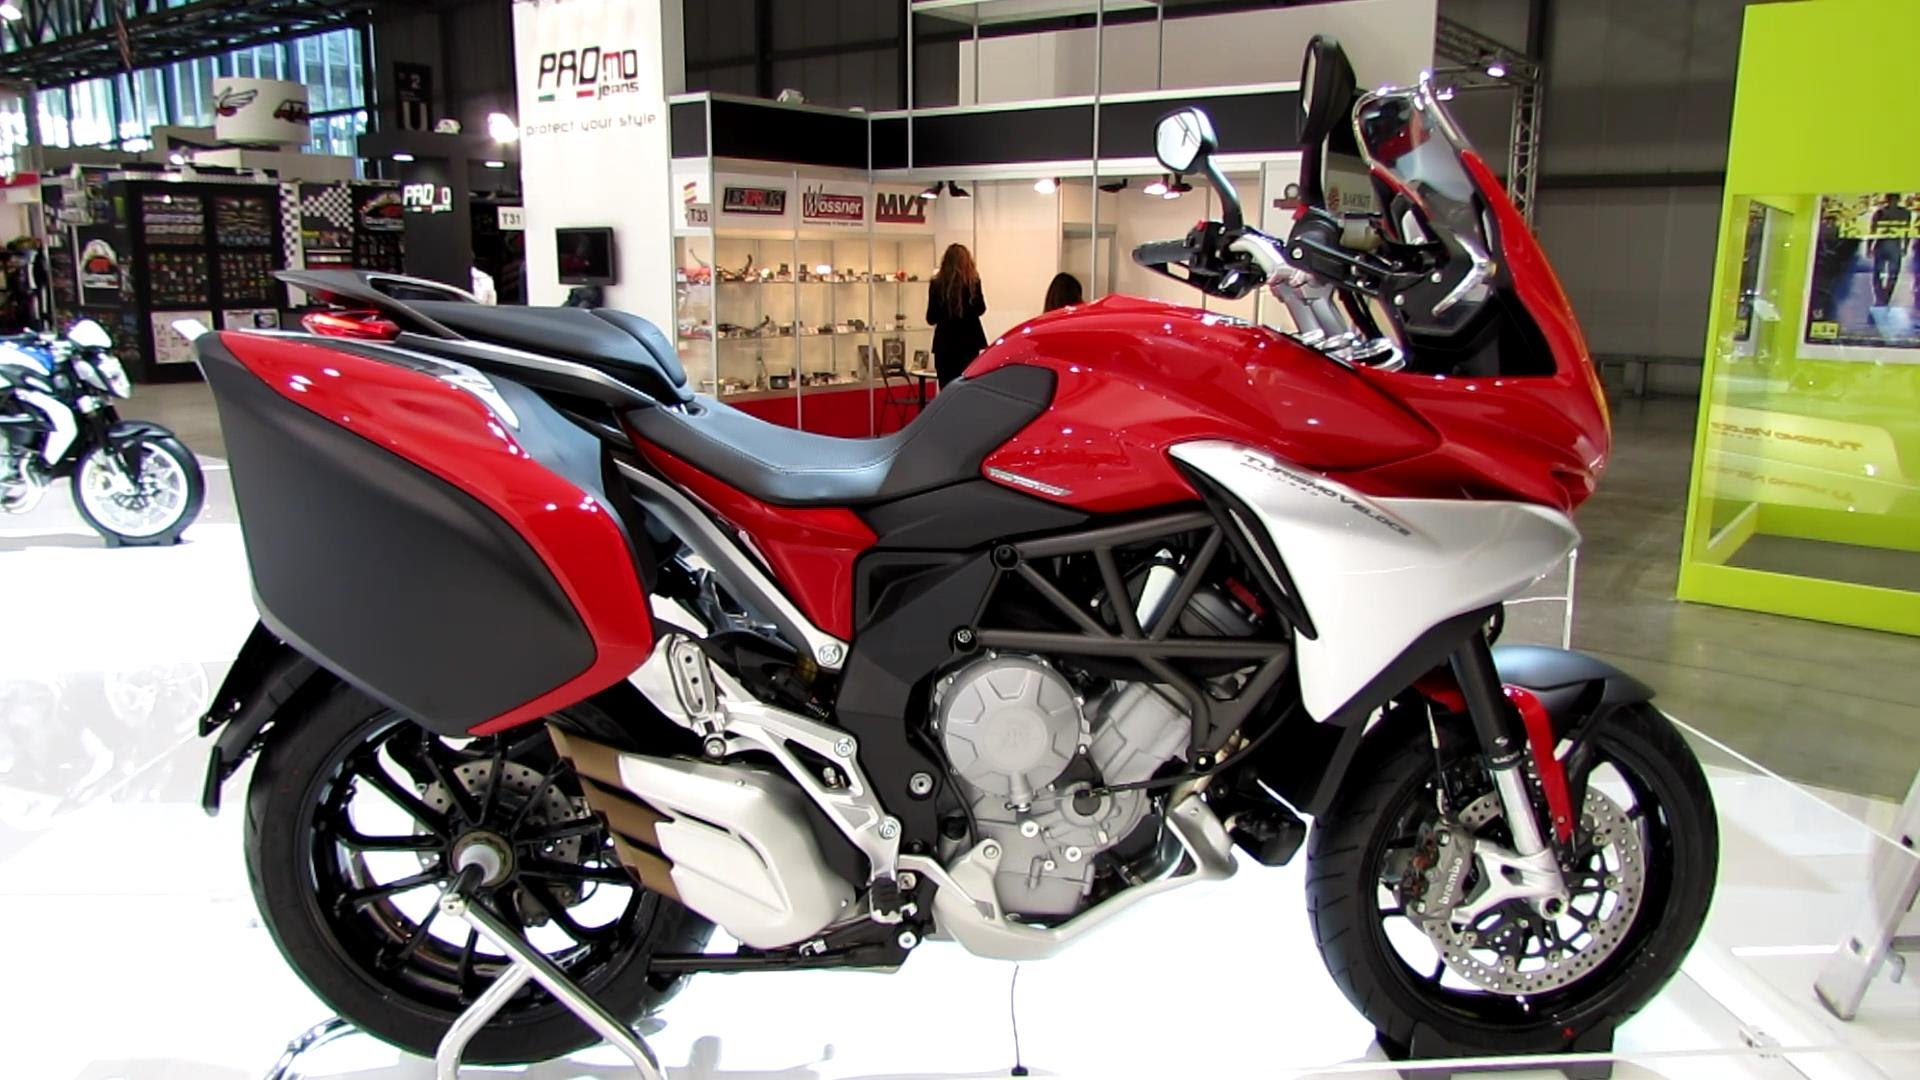 MV Agusta TurismoVeloce Lusso 800 2013 images #117196